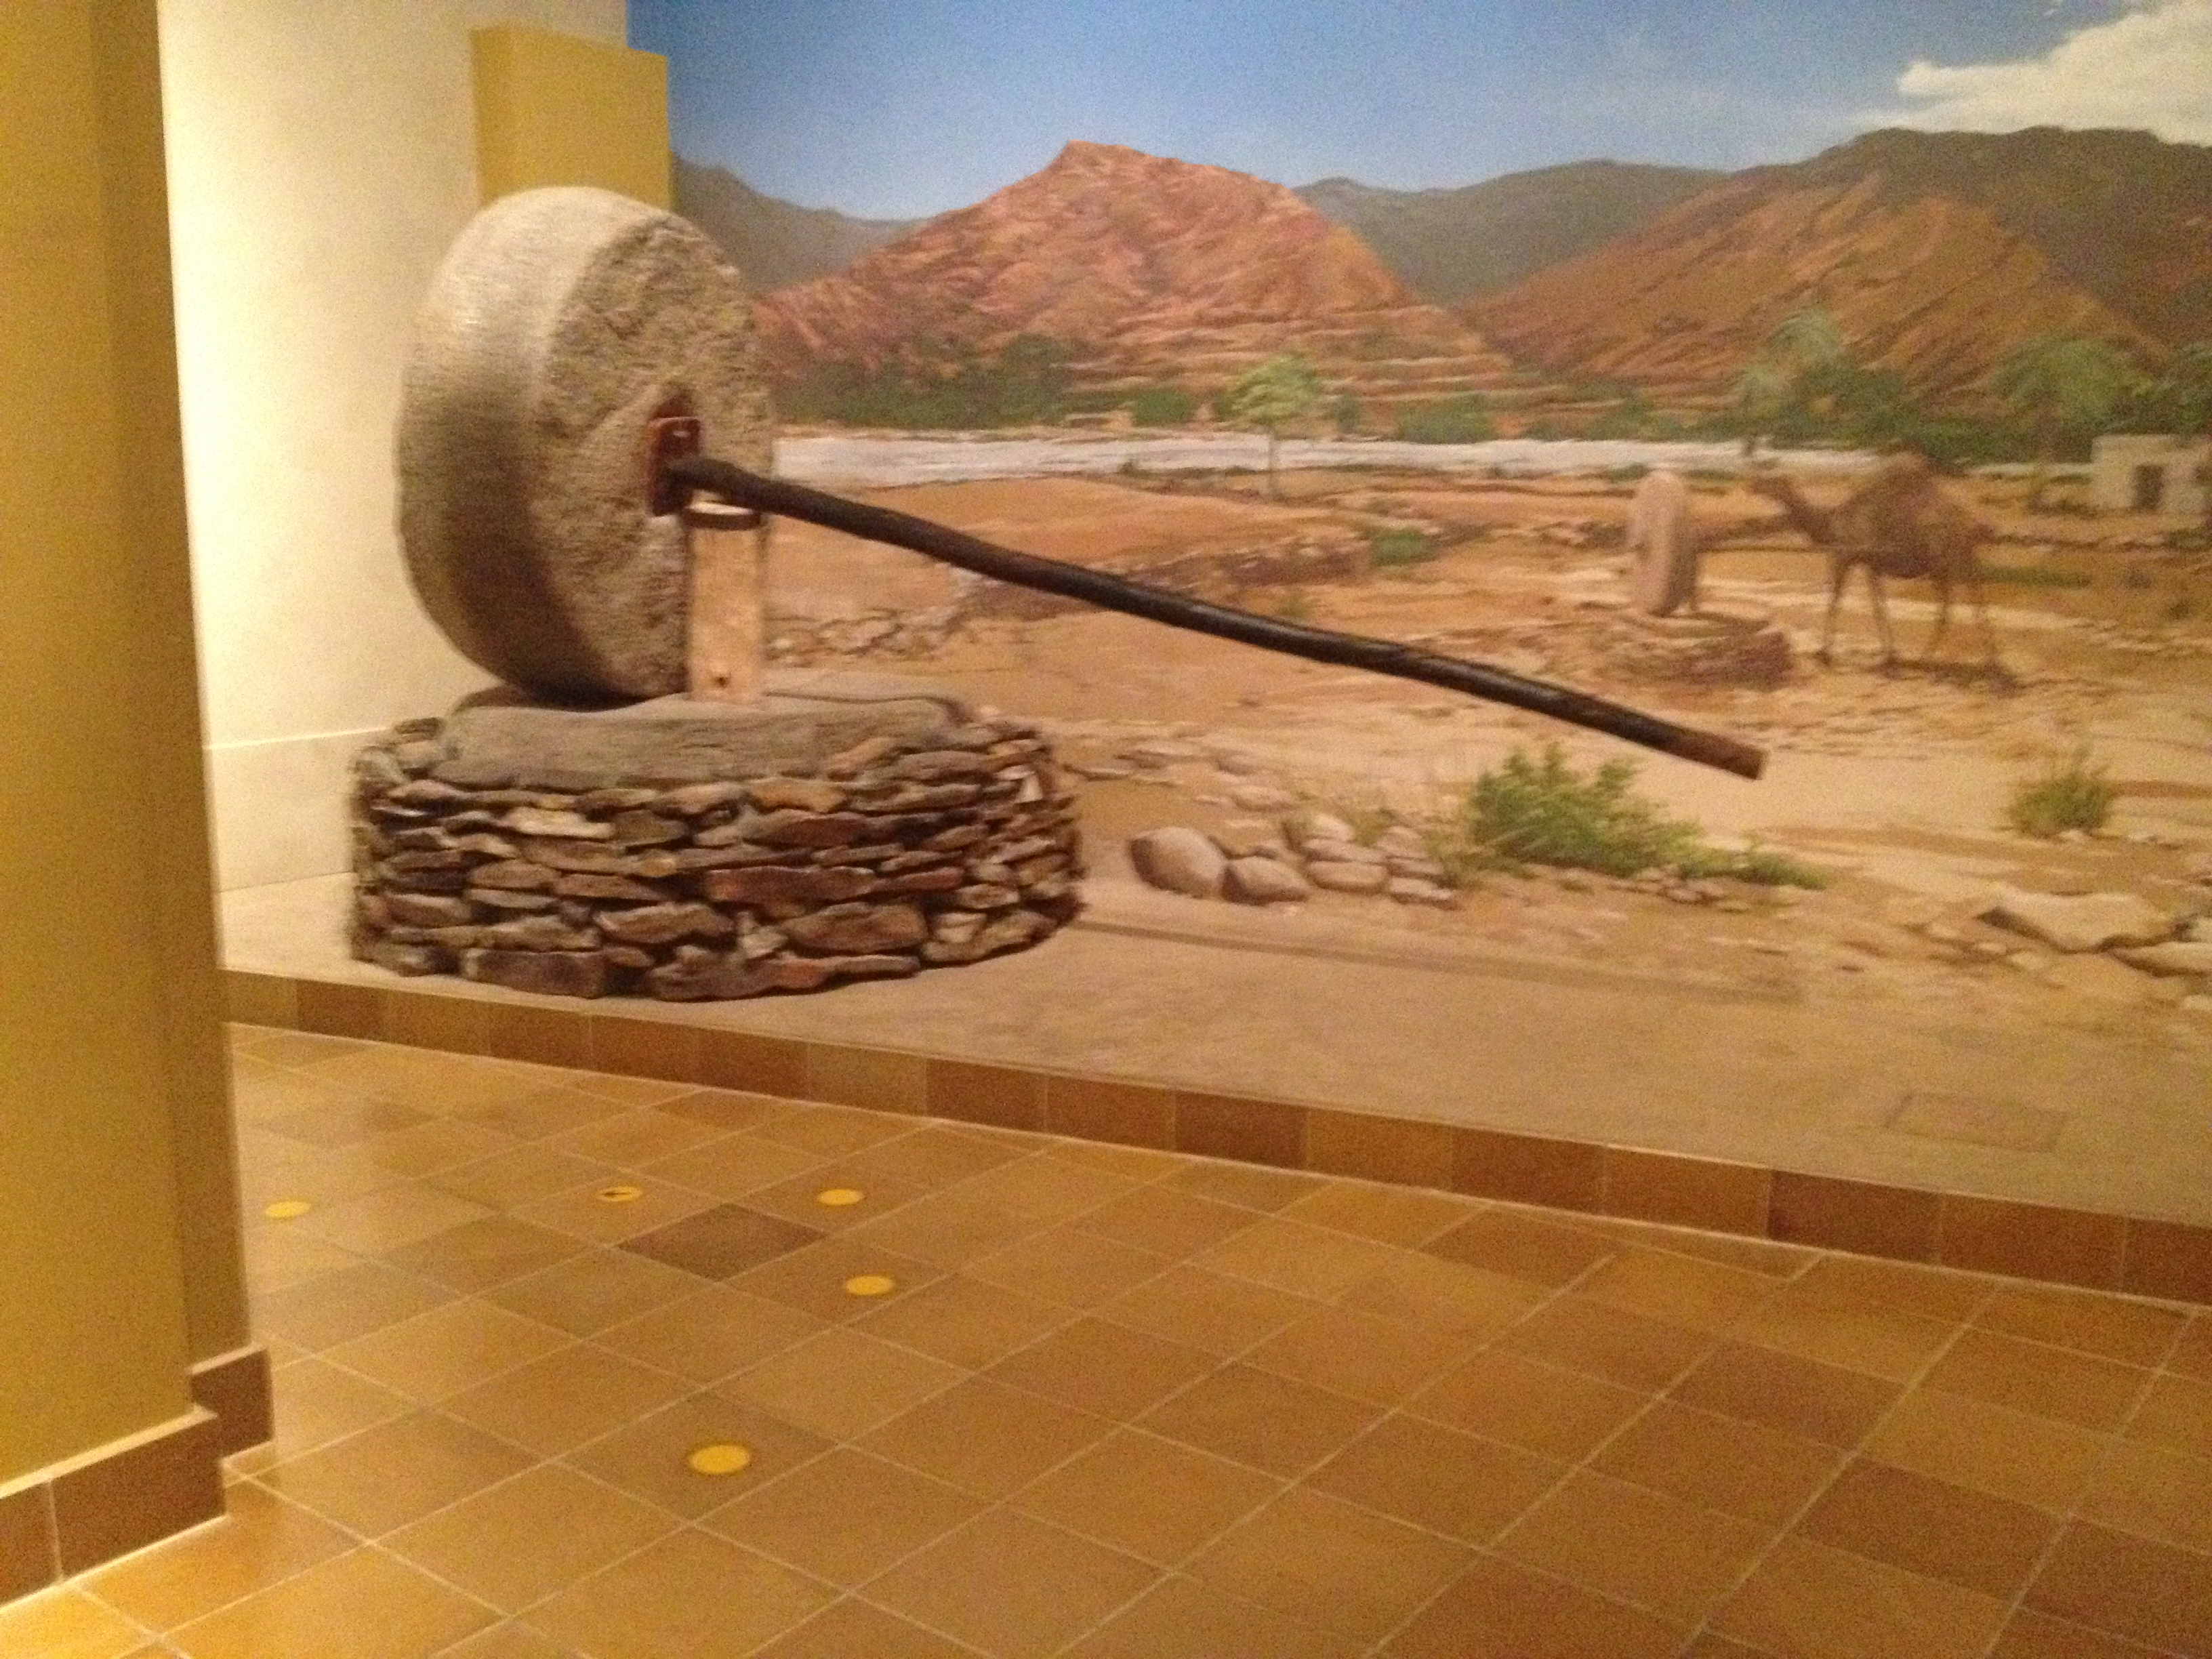 Grinder from Al-Ukhdoud in the Najran Museum